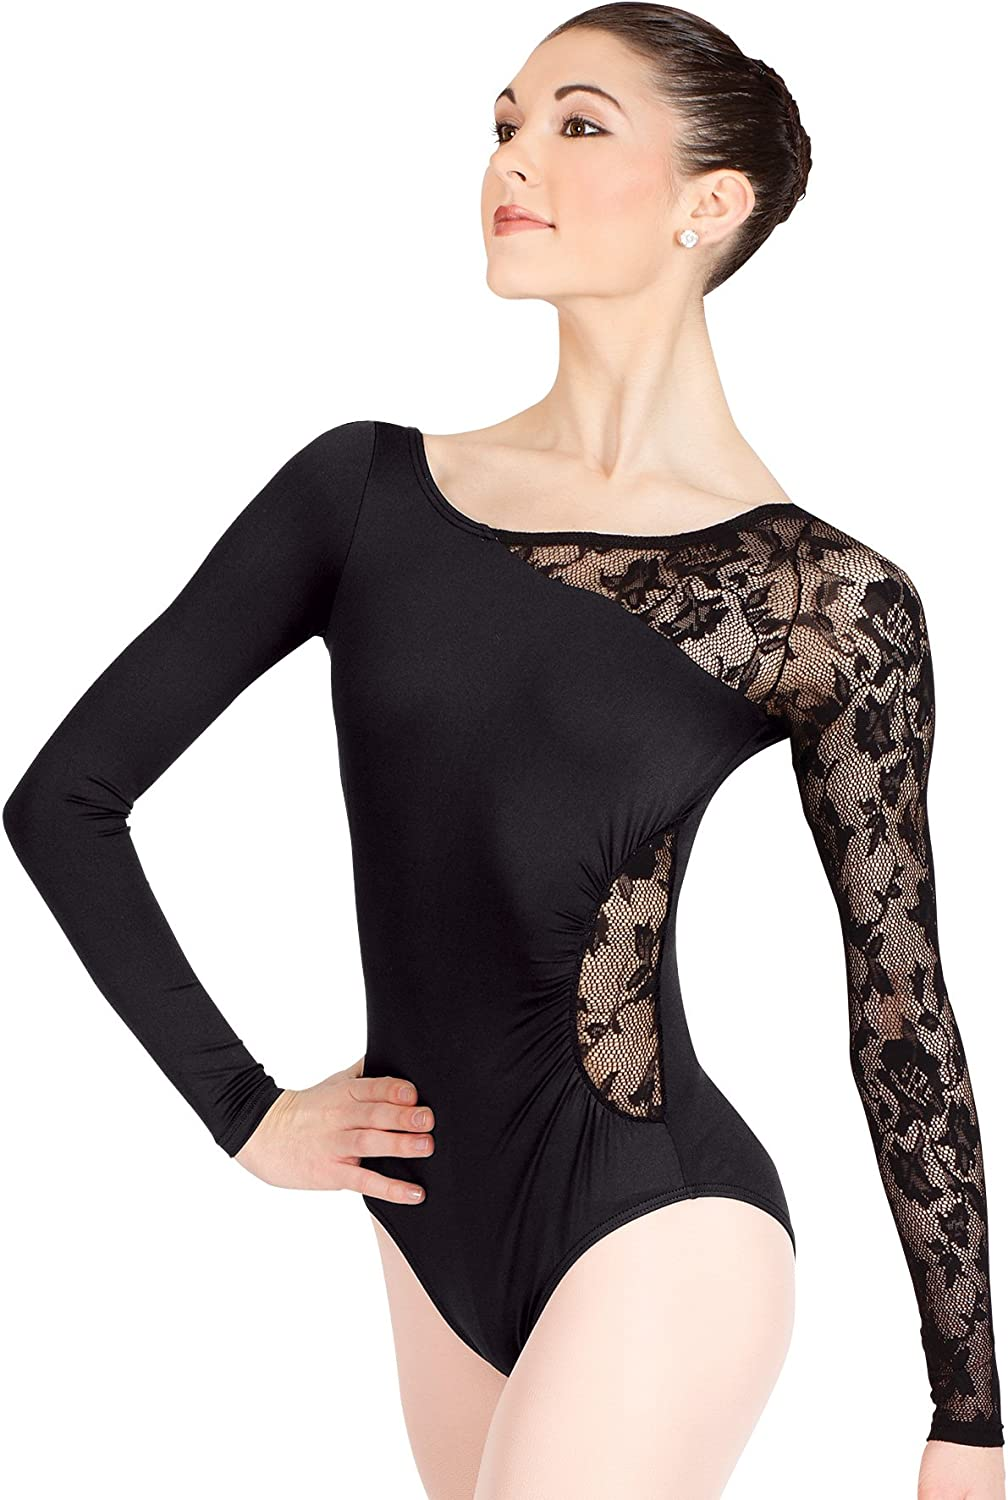 Adult Long Sleeve Leotard with Lace Sleeve and Insert N8650